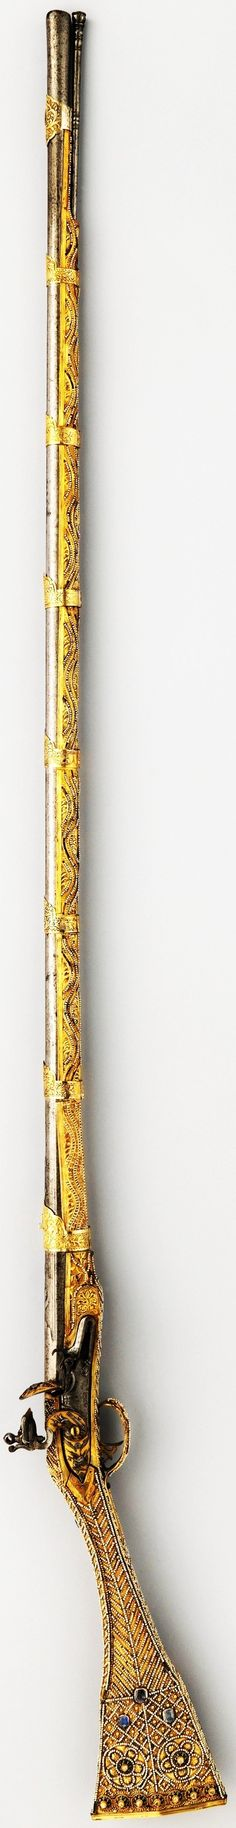 Ottoman (Albanian or Macedonianan) Ffintlock rifle, barrel possibly late 17th century; lock (French), mountings, and decorations early 19th century, steel, silver gilt; iron; pearl; diamond; sapphire, L. 62 7/8 in. (159.7 cm), Met Museum,  Bequest of George C. Stone, 1935.